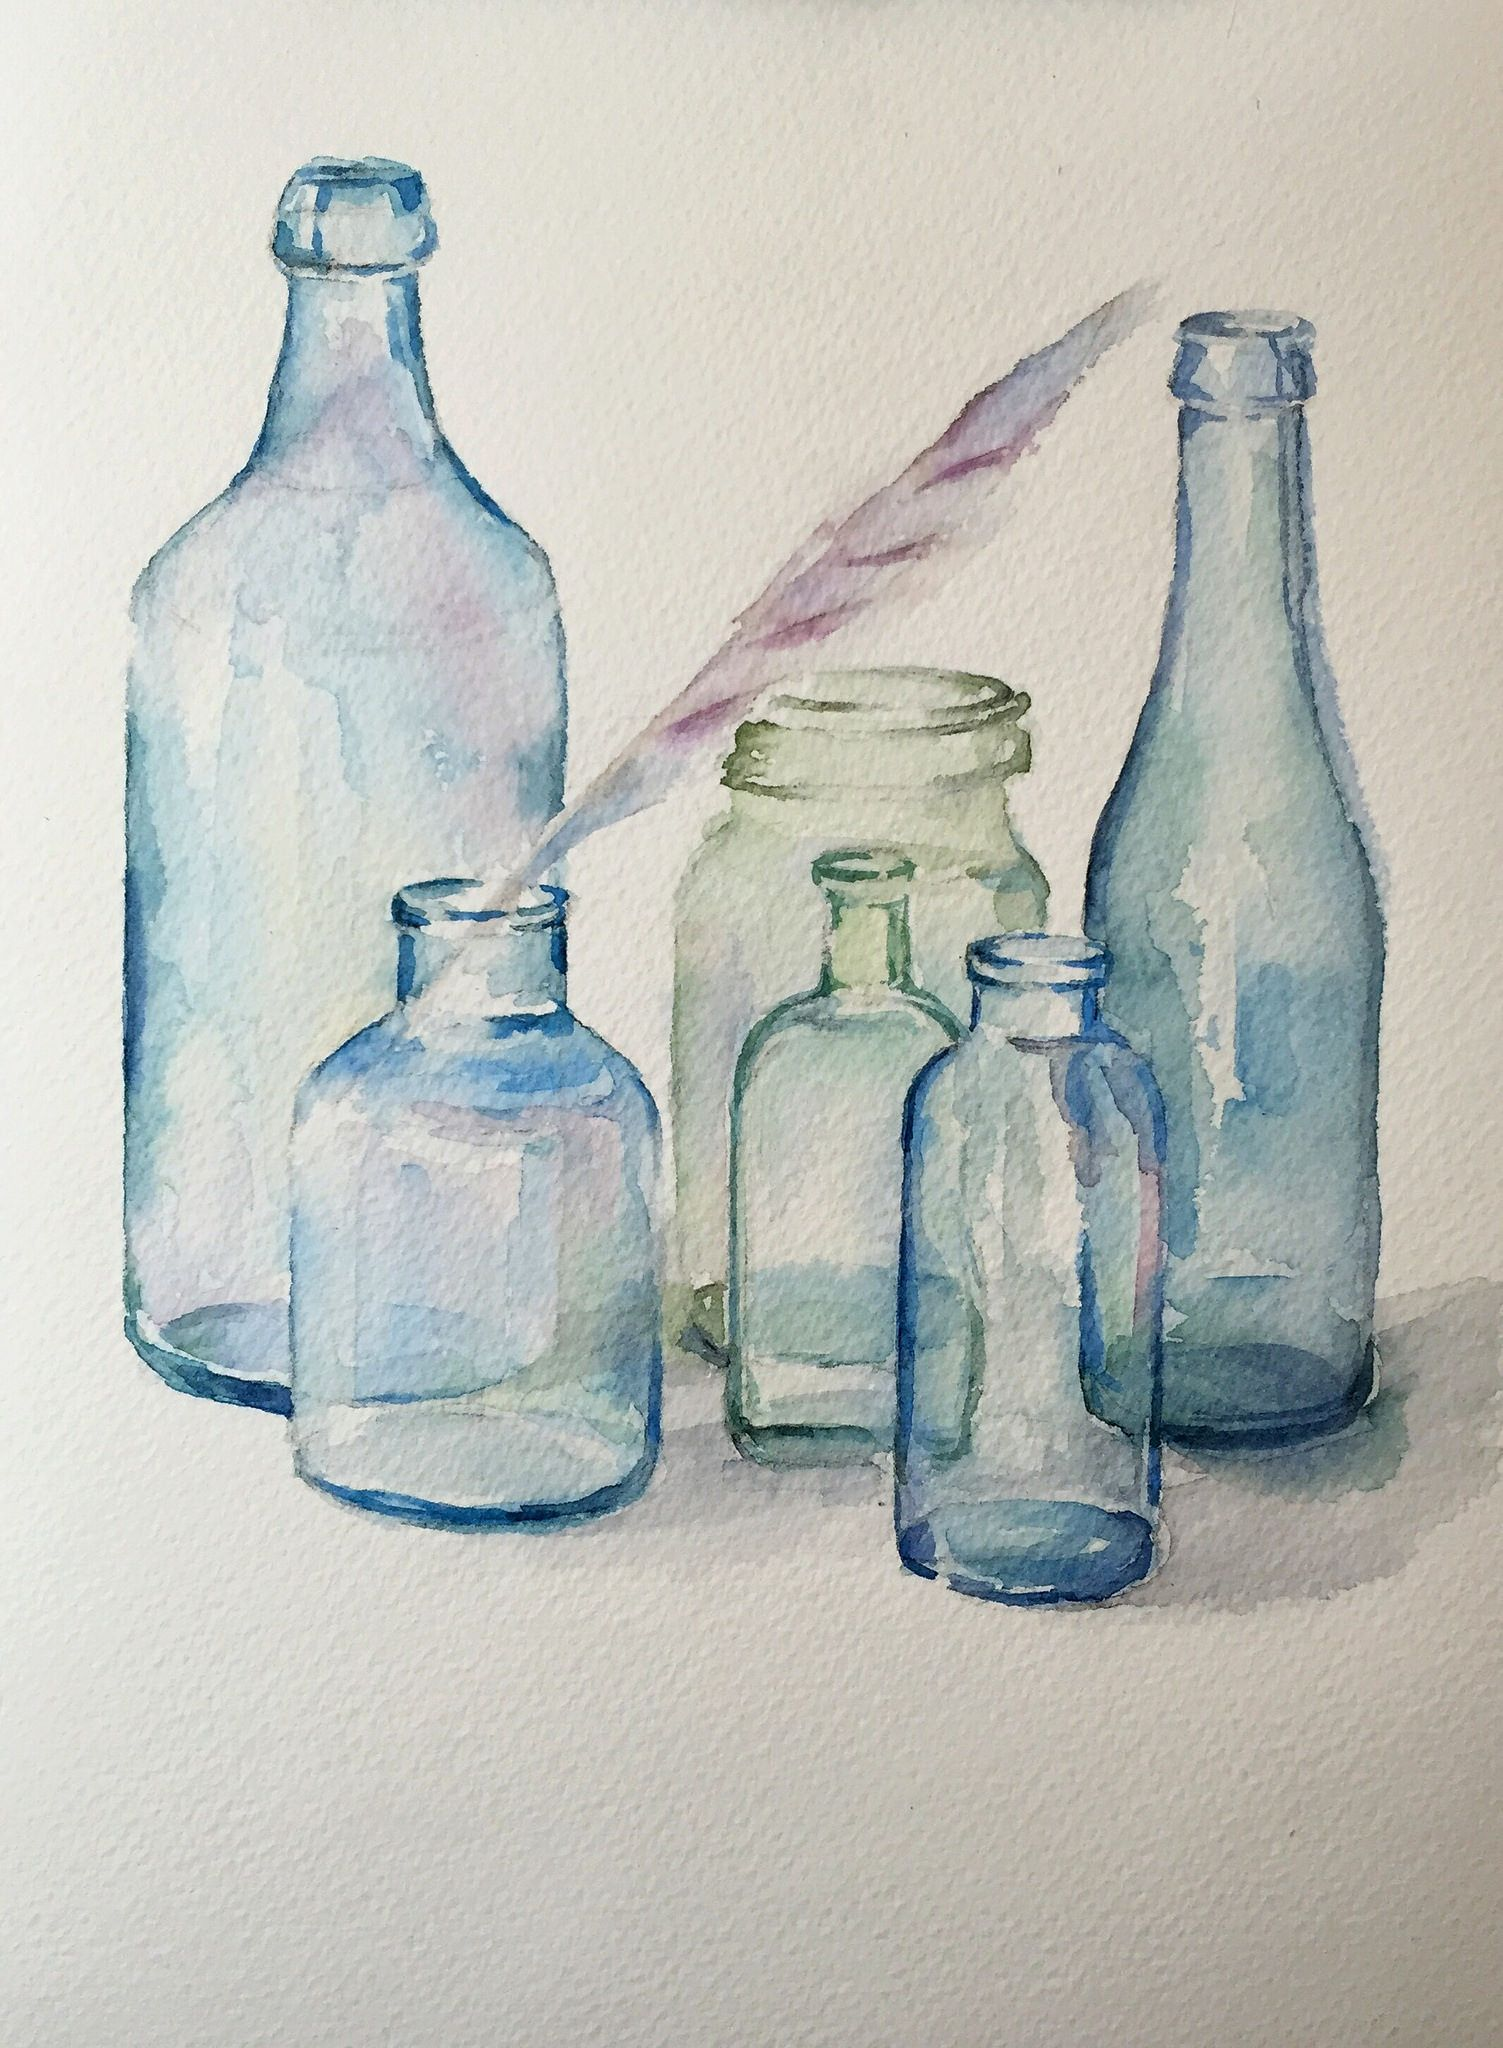 Watercolor练习 Bule Glass Bottle With Images Watercolor